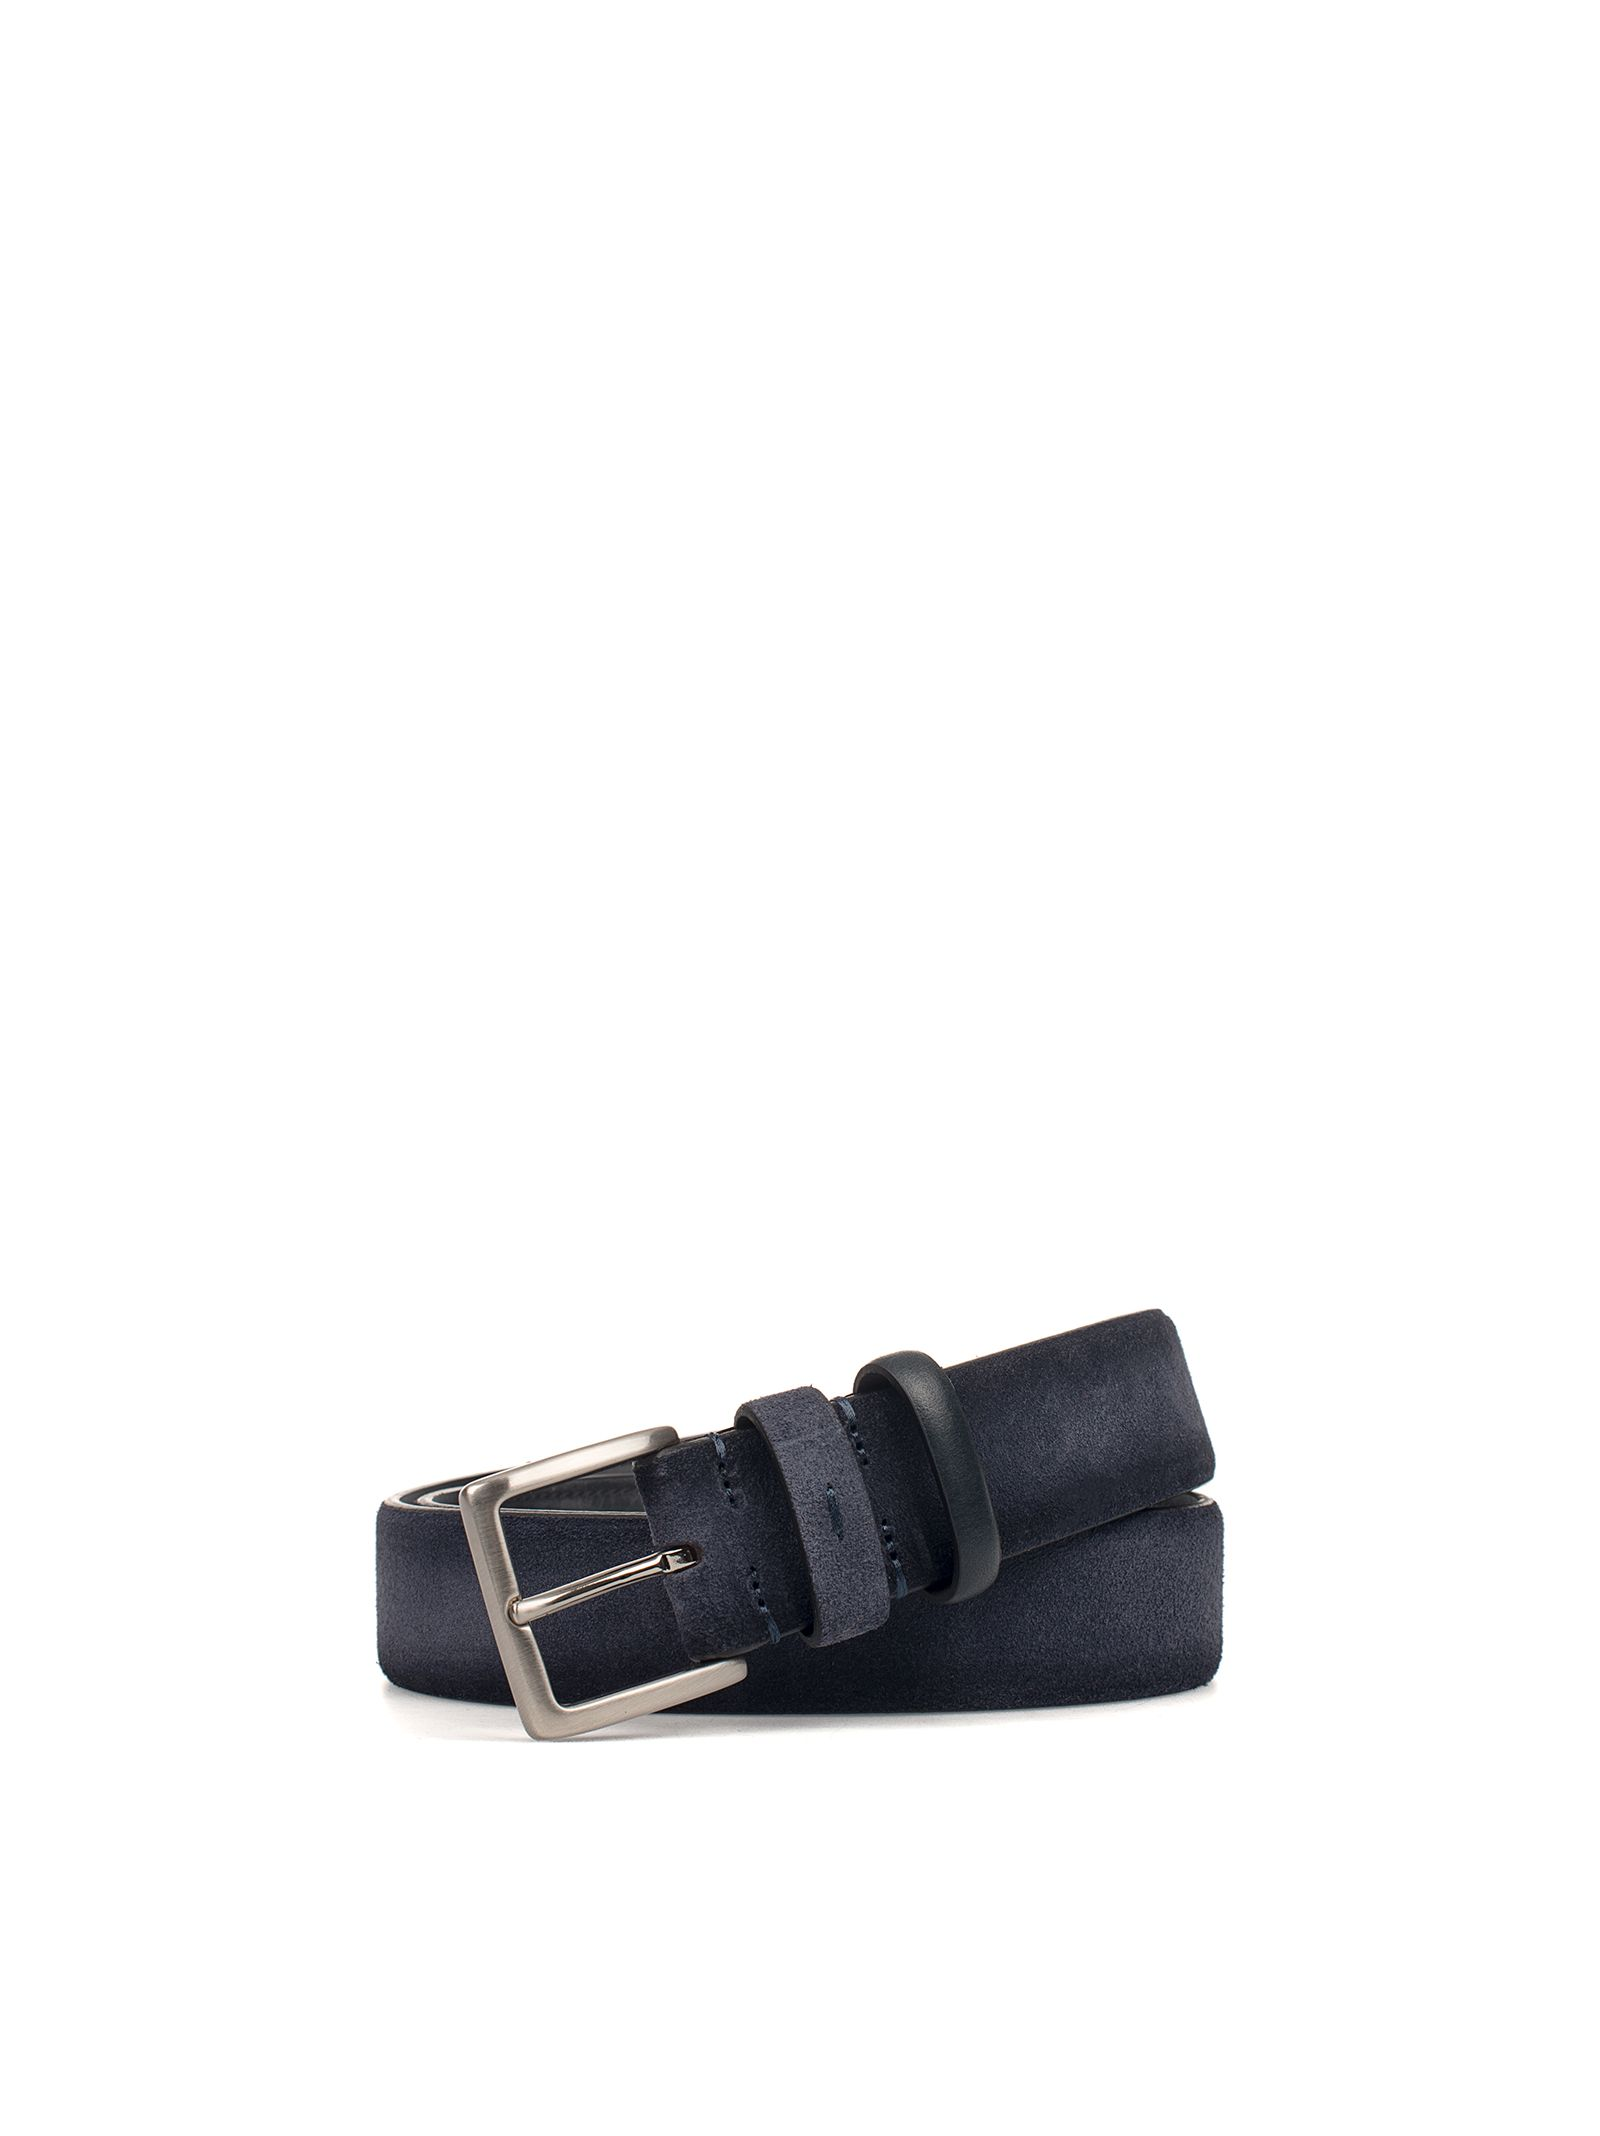 Blue Nubuk Leather Belt